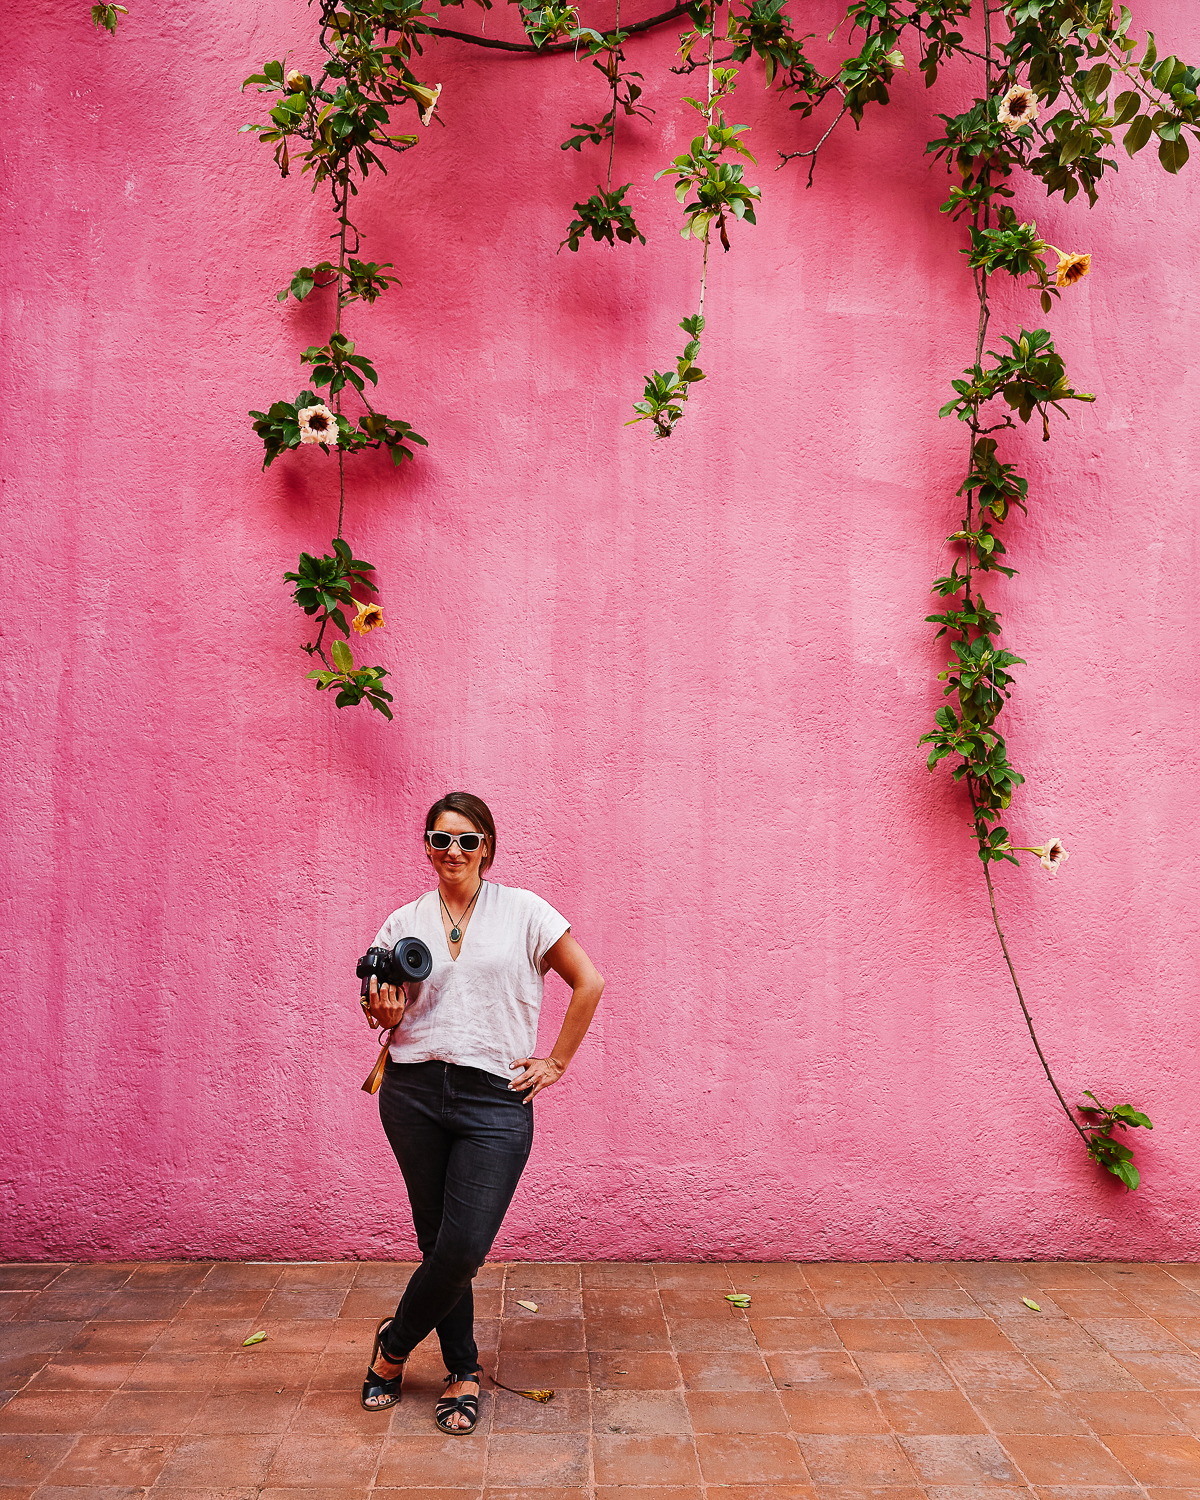 Photo by Nicole Beck. I love this pink wall at Casa Luis Barragan